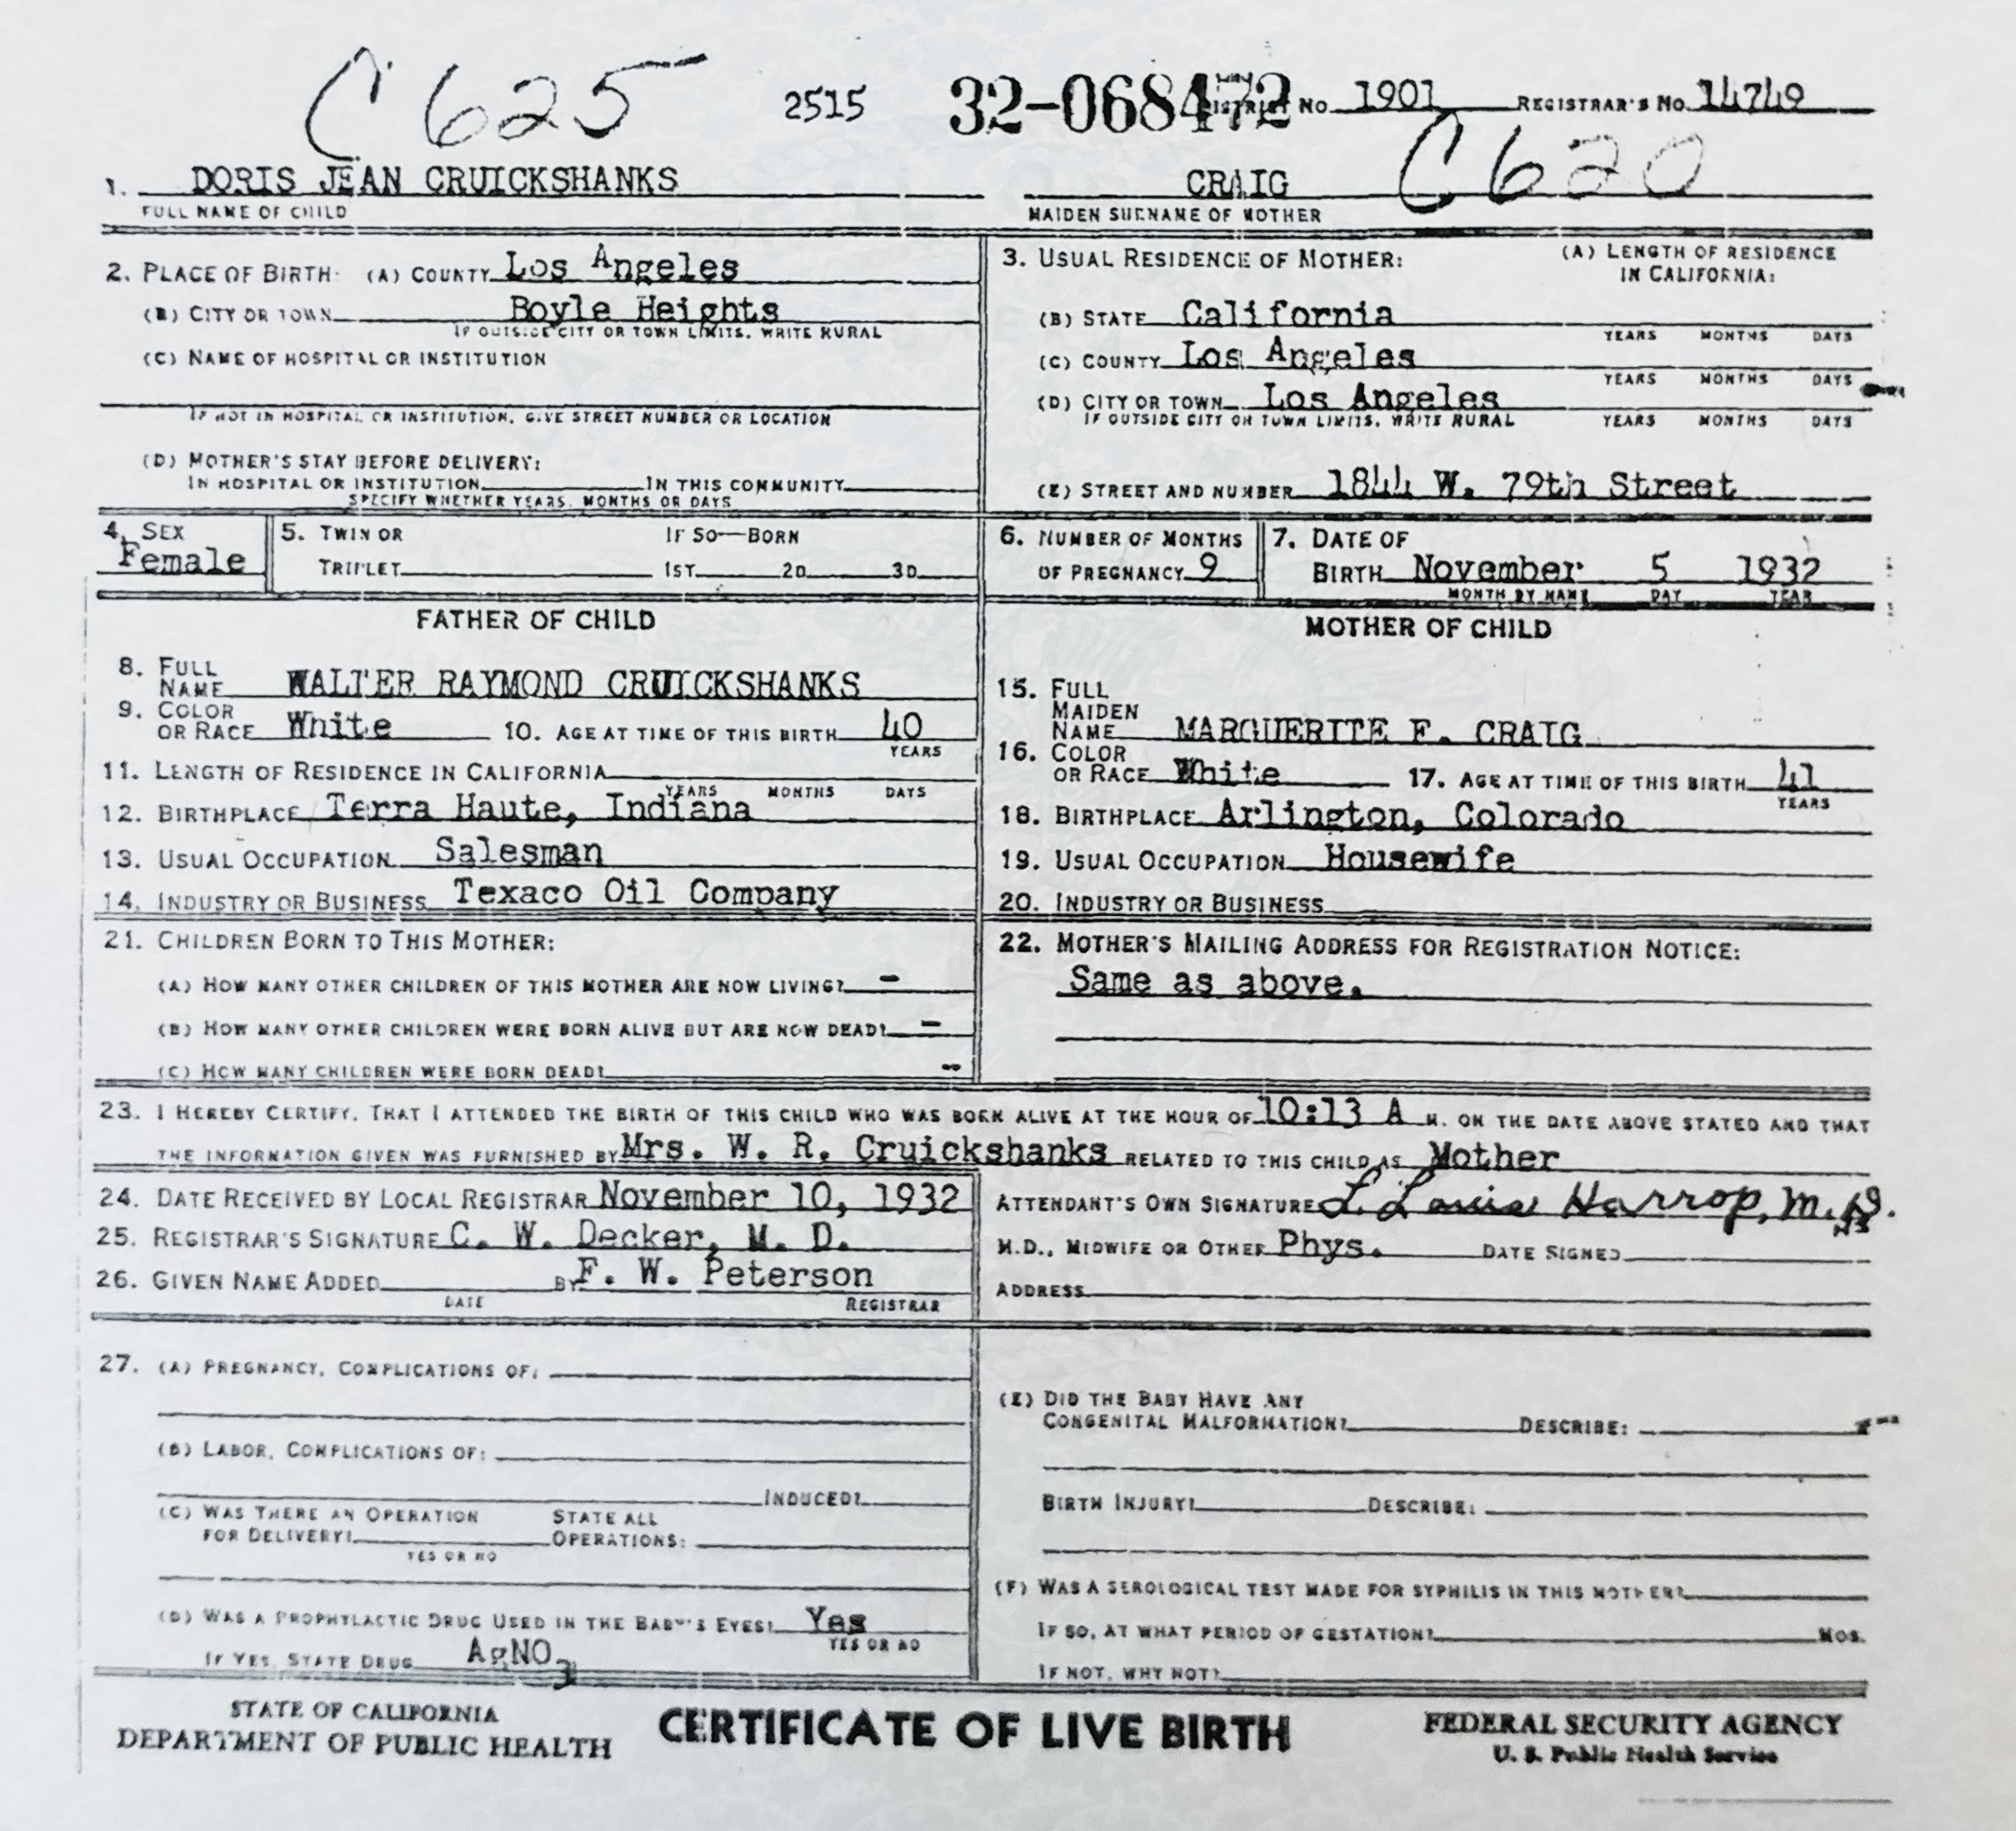 Doris Falsifiled Birth Certificate Los Angeles Dr. Harrop